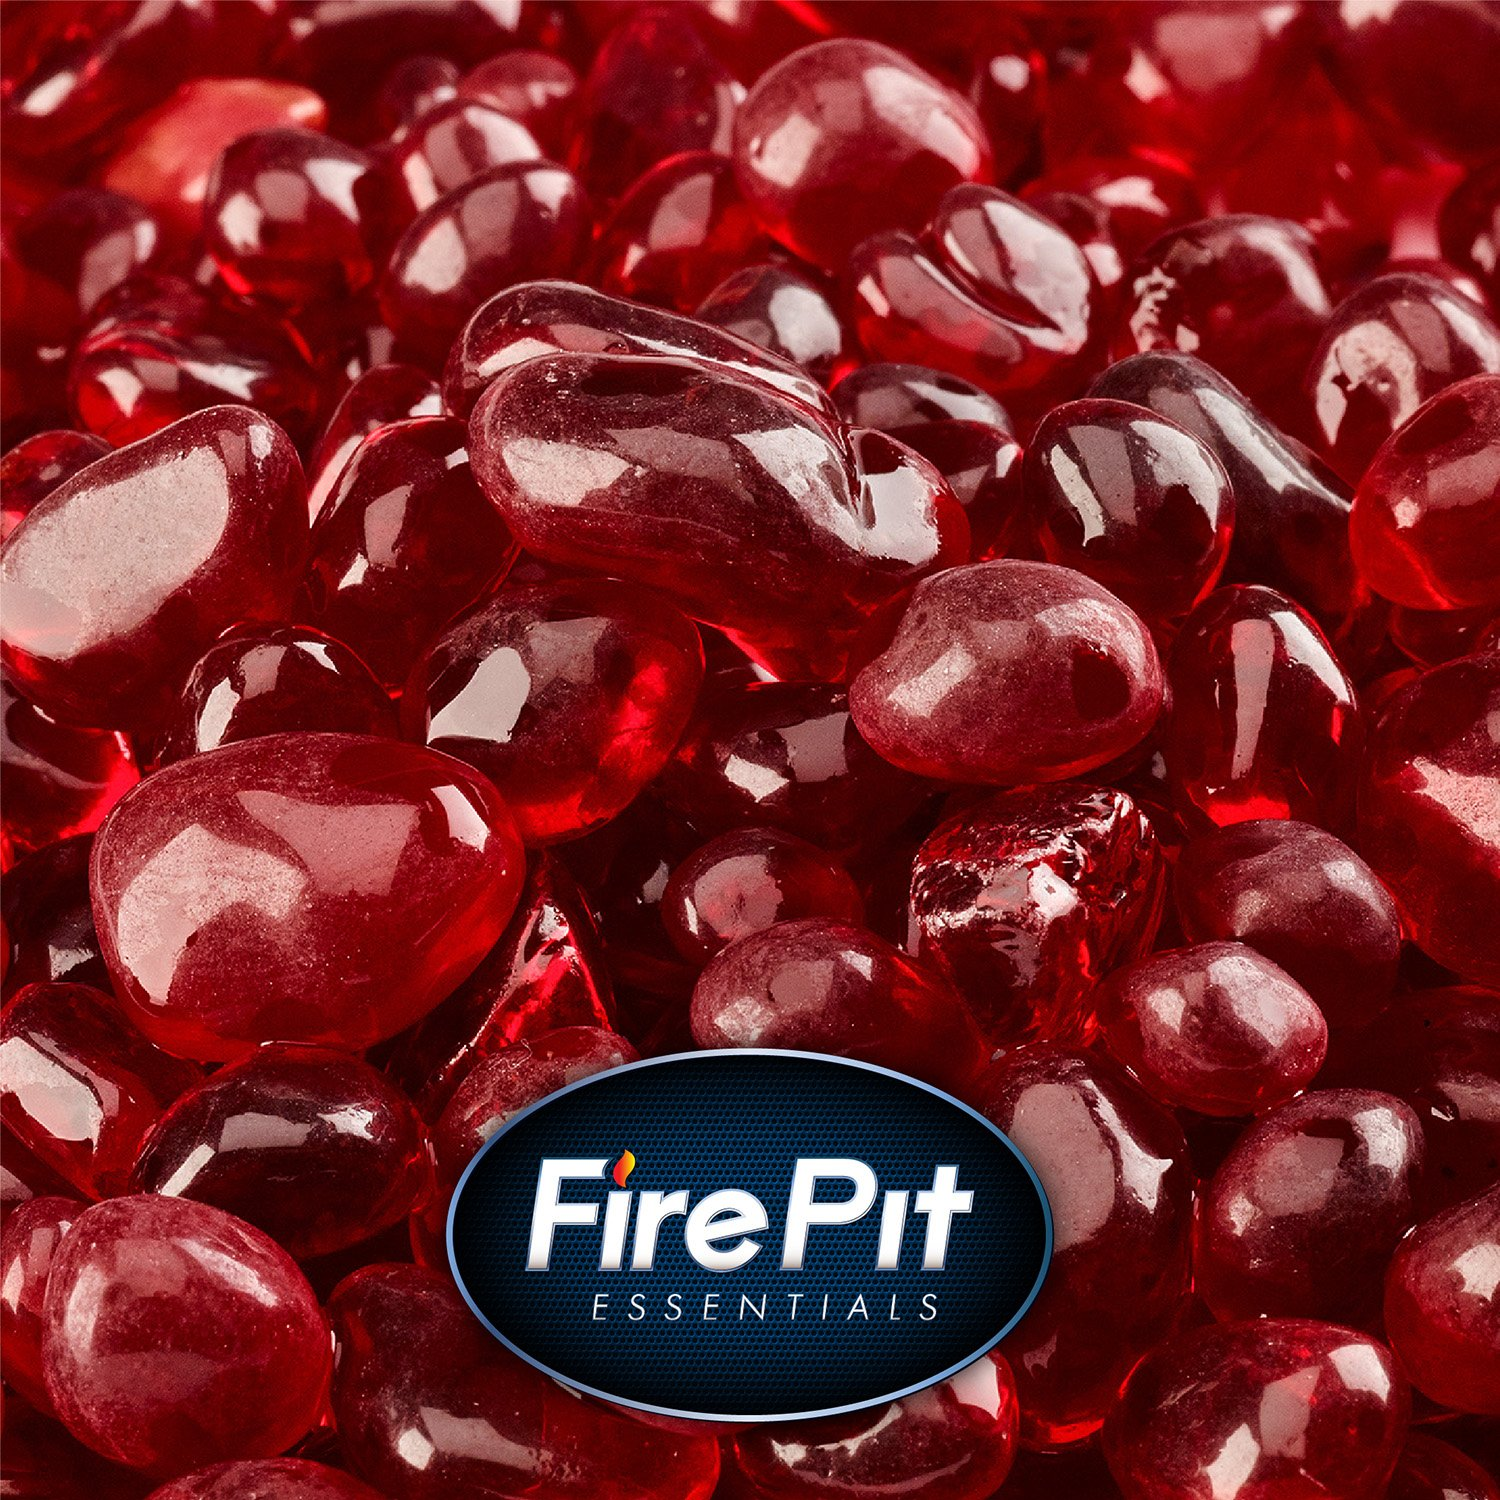 Red Fire Glass for Indoor and Outdoor Fire Pits or Fireplaces | 10 Pounds | Marlboro Red, Fire Glass Dots, 3/8 Inch